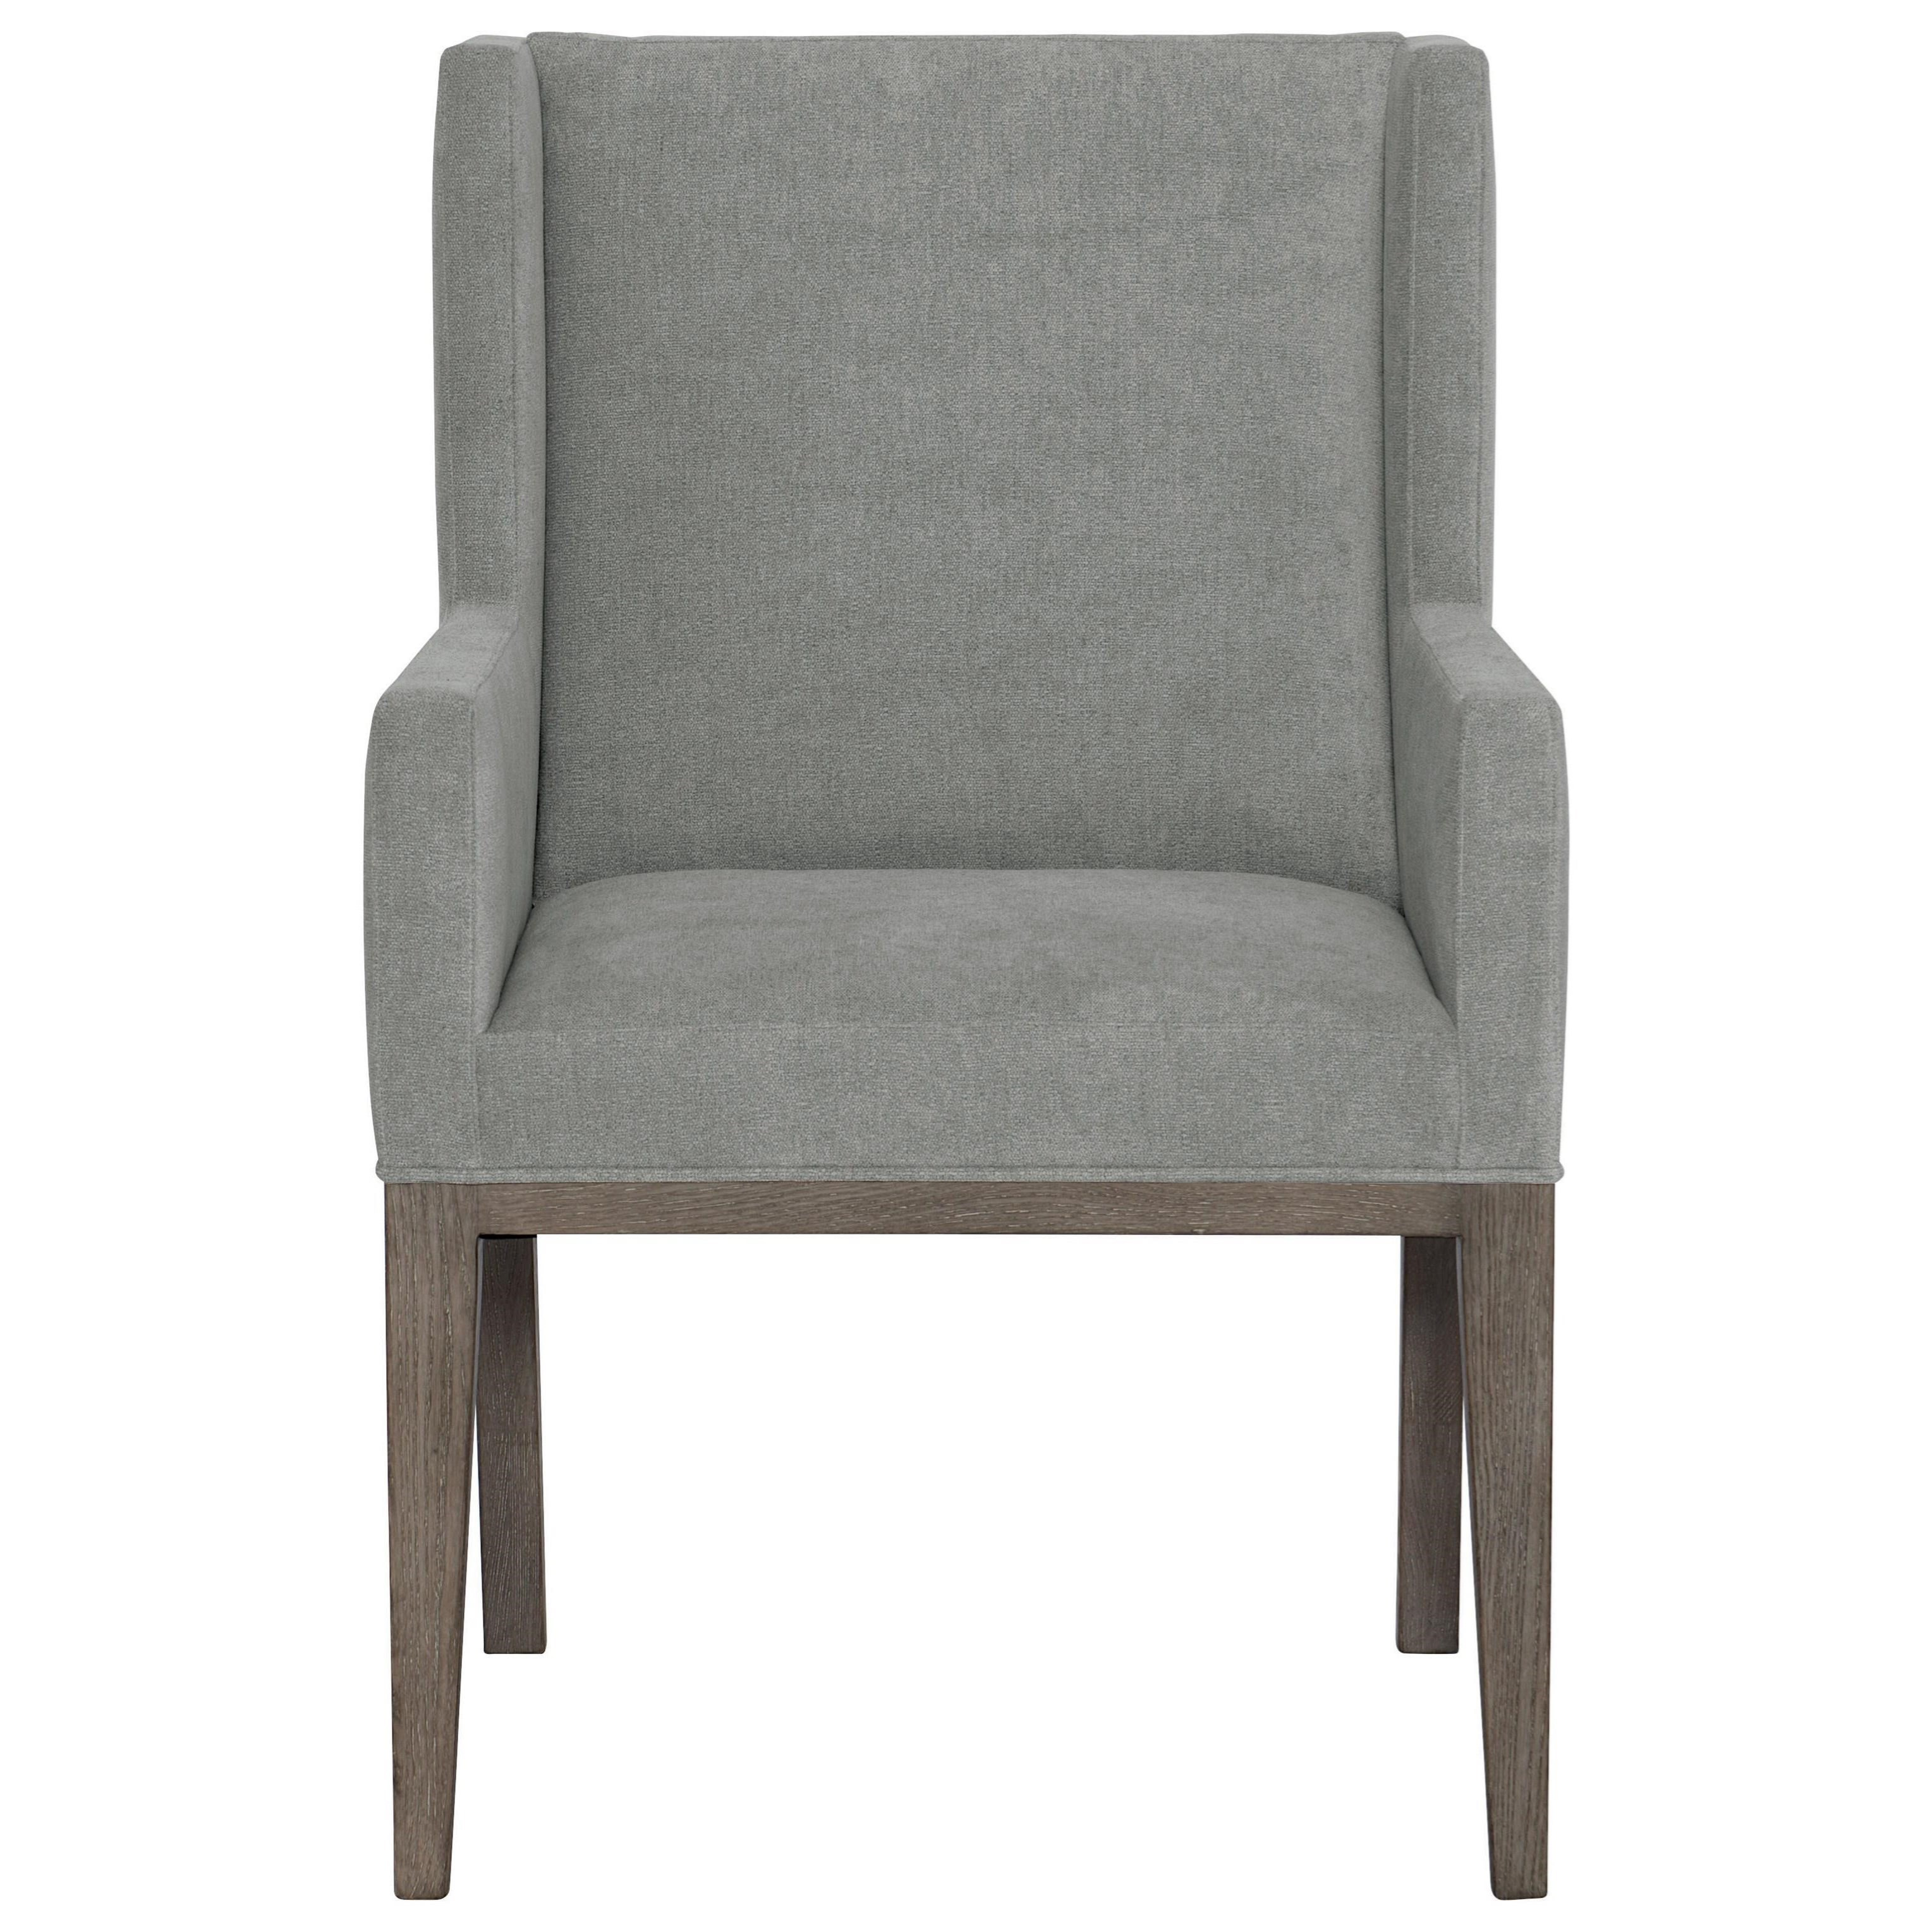 Linea Customizable Upholstered Arm Chair by Bernhardt at Fisher Home Furnishings